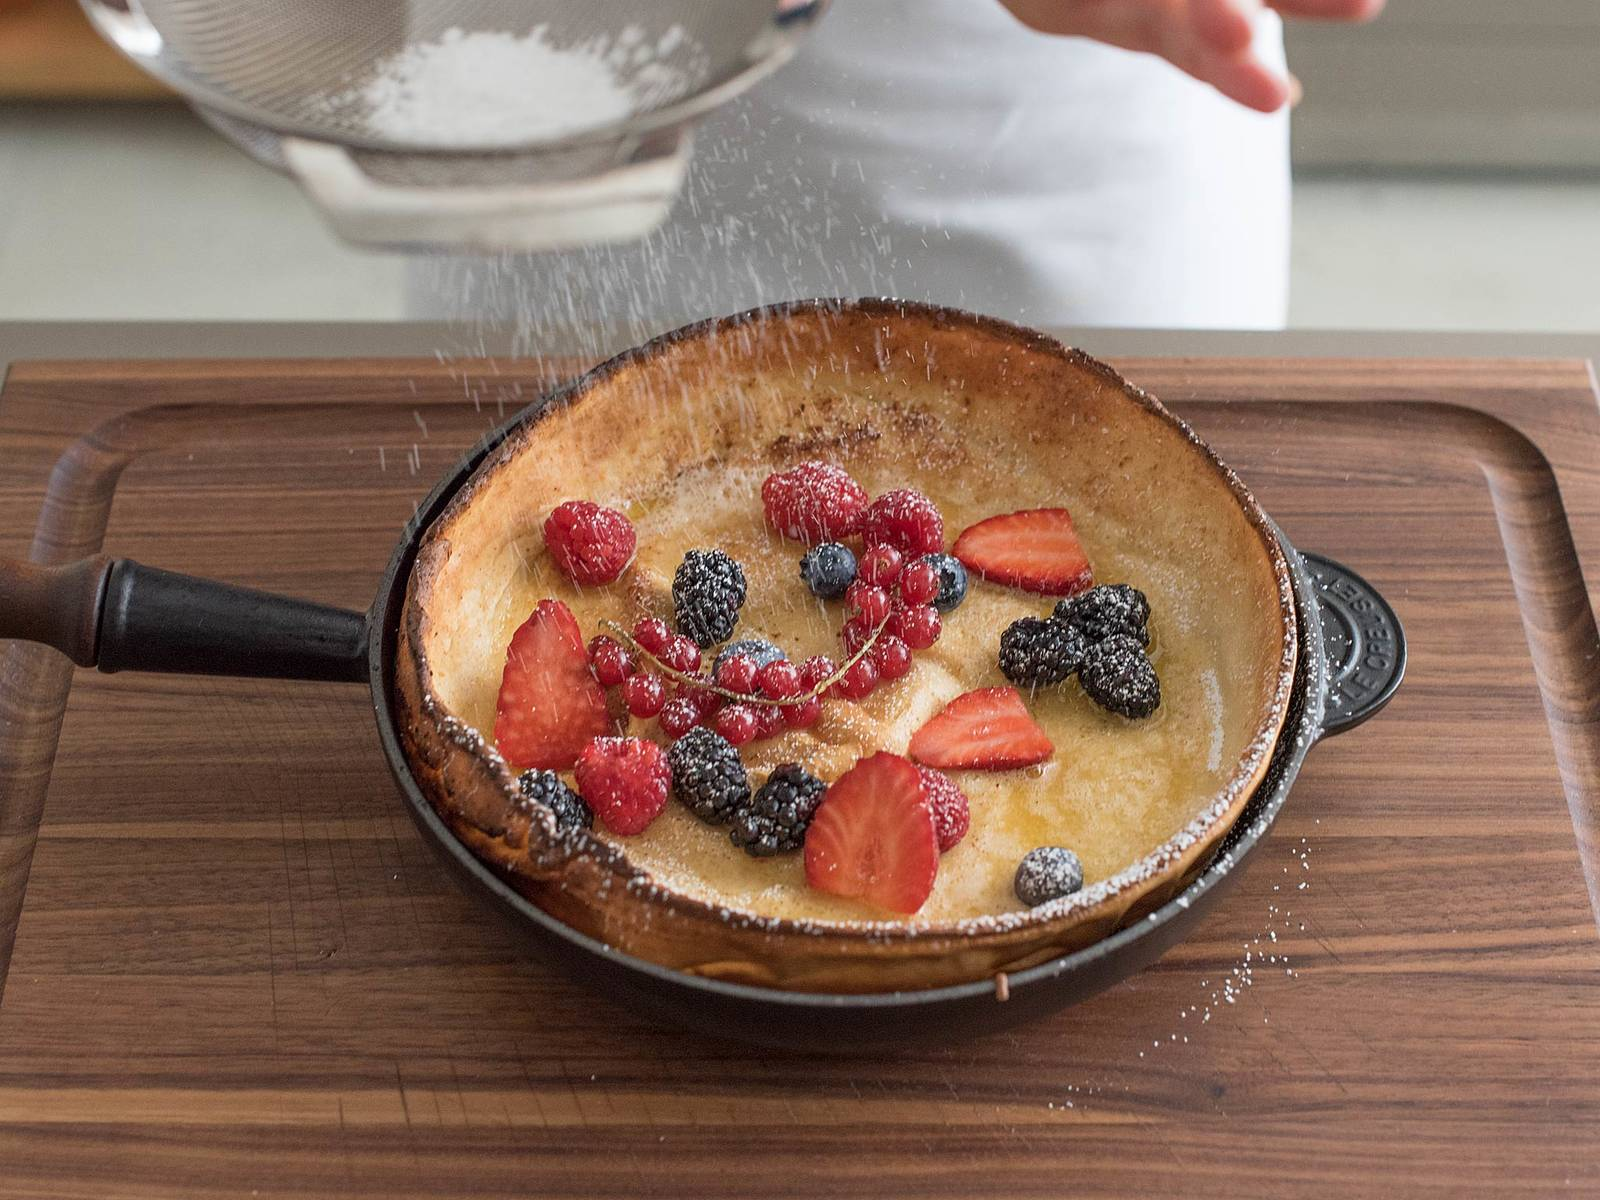 Slide Dutch baby onto serving platter or cutting board, or serve straight from pan, if desired. Top with fresh berries and sprinkle with lemon juice. Dust with confectioner's sugar and cut into wedges for serving. Serve warm with maple syrup.